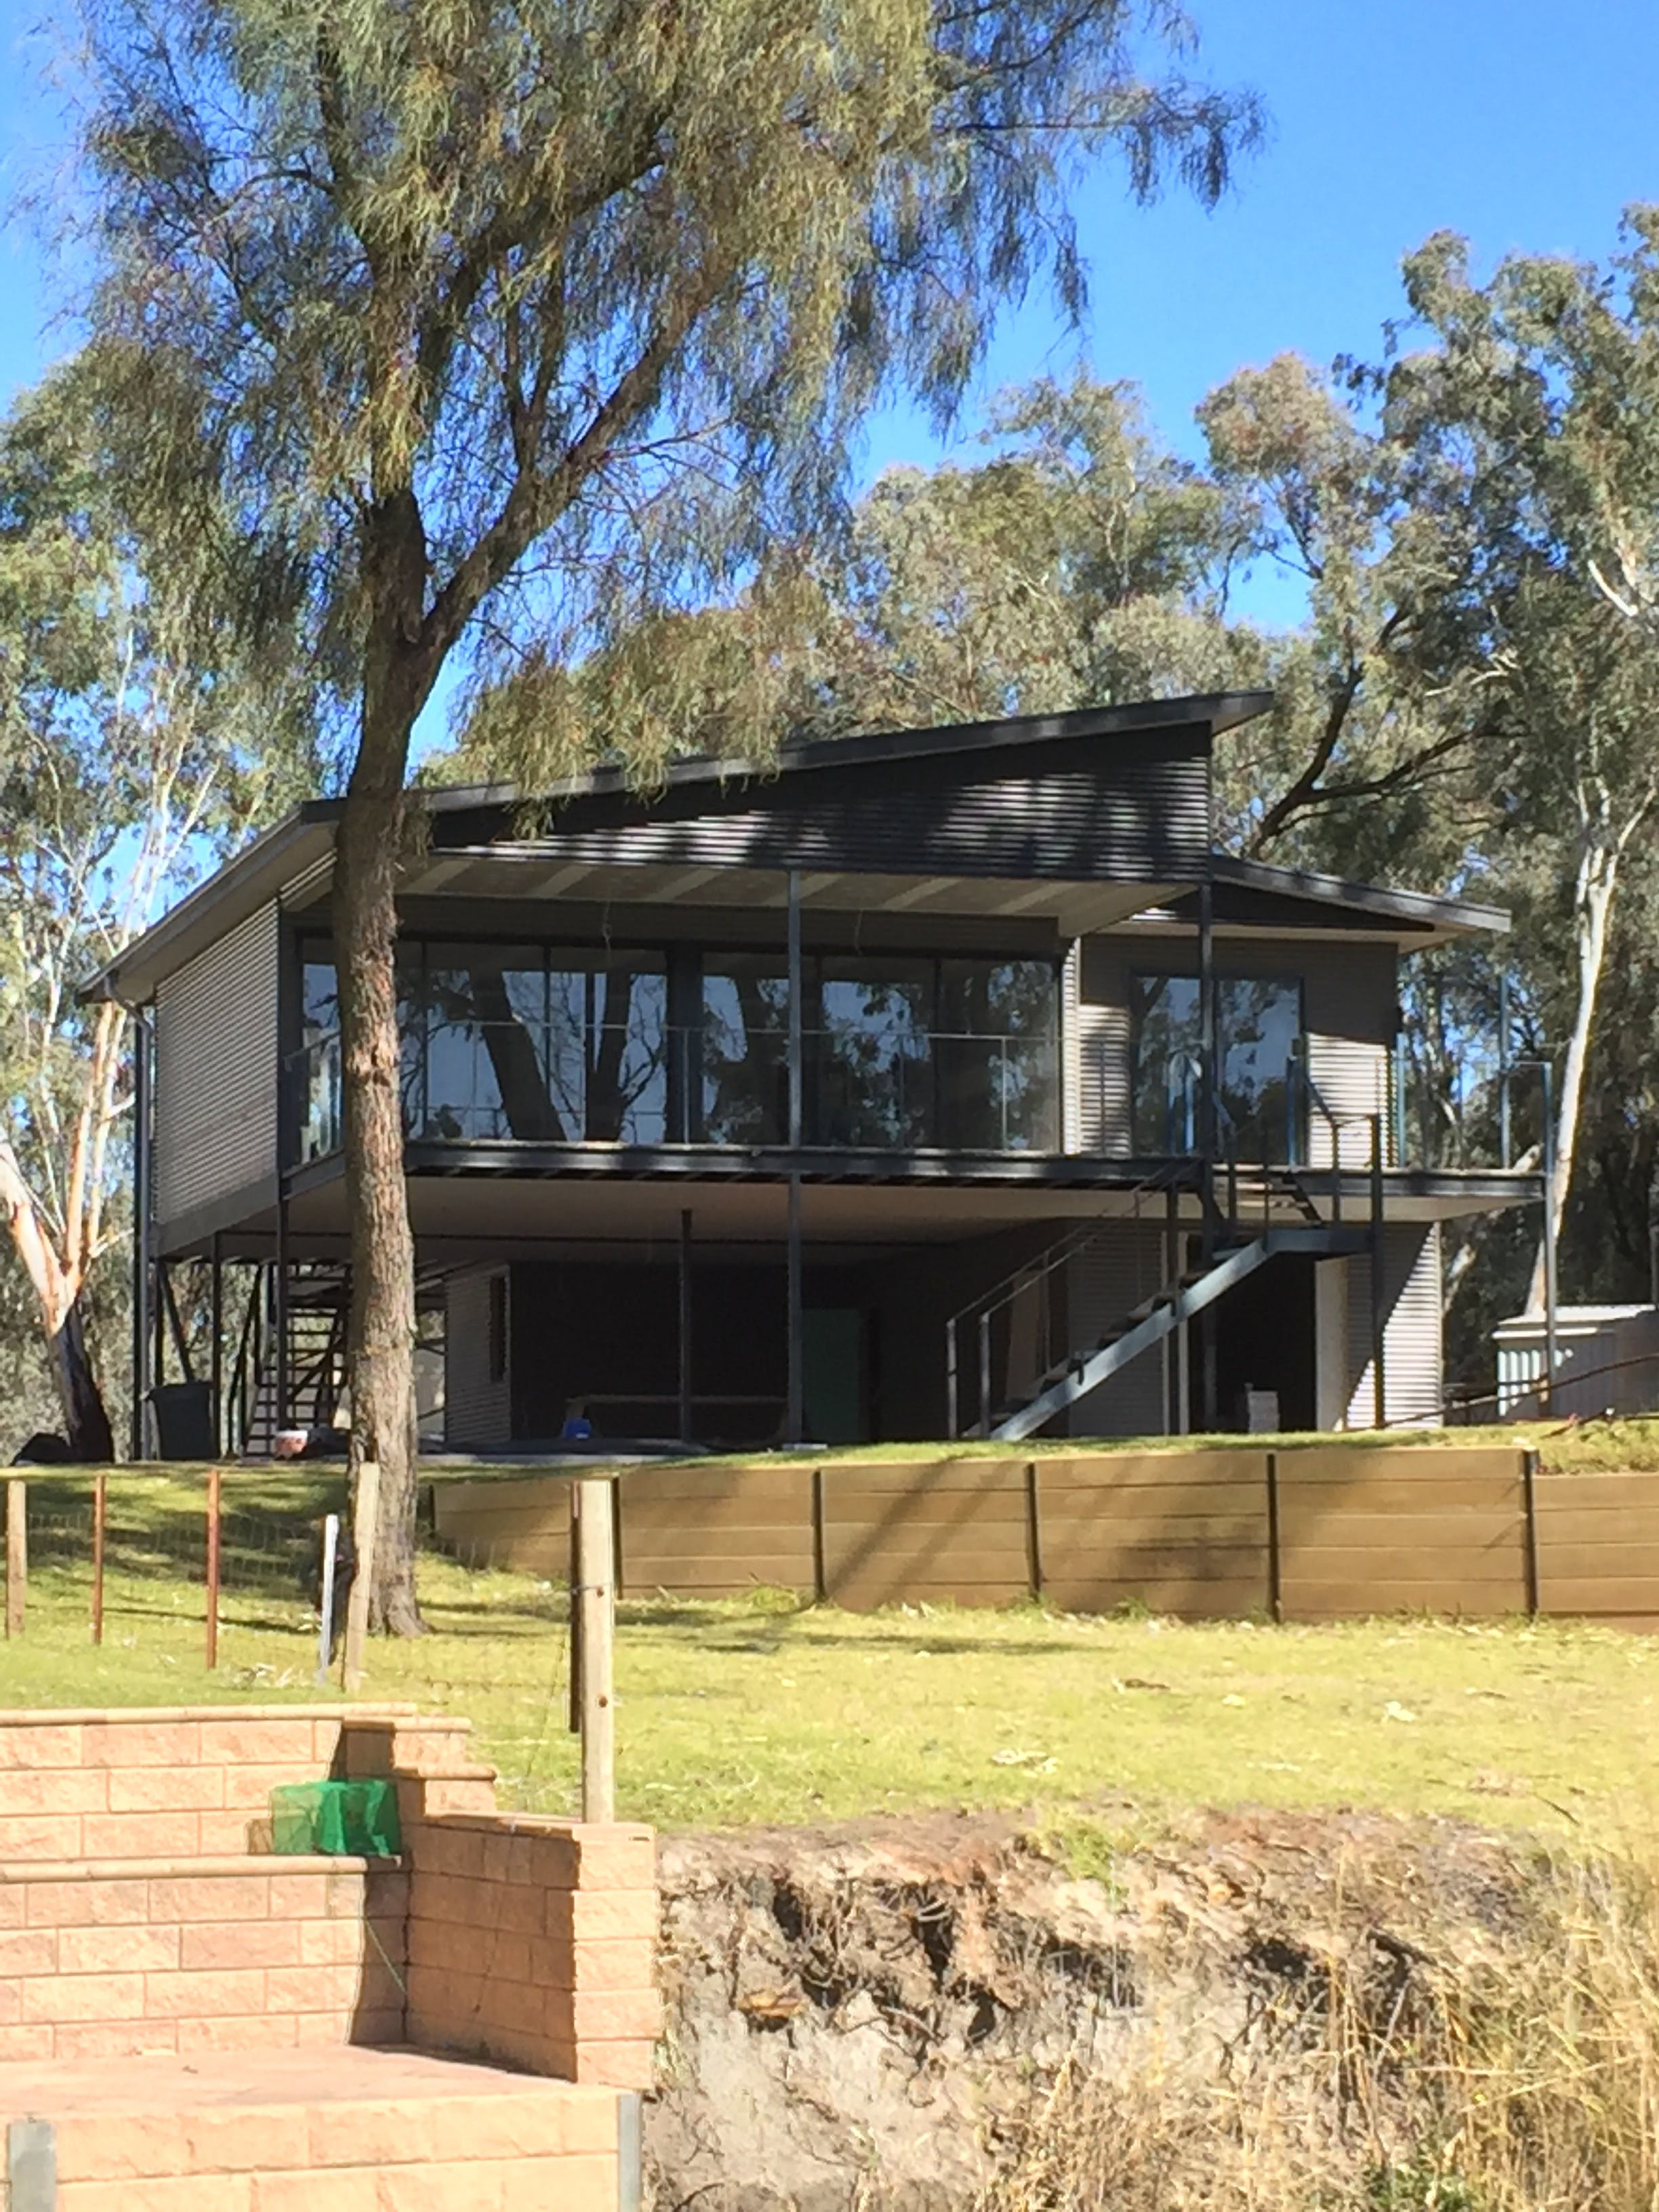 36 Brenda Park Via Morgan -River Shack Rentals - Accommodation Fremantle